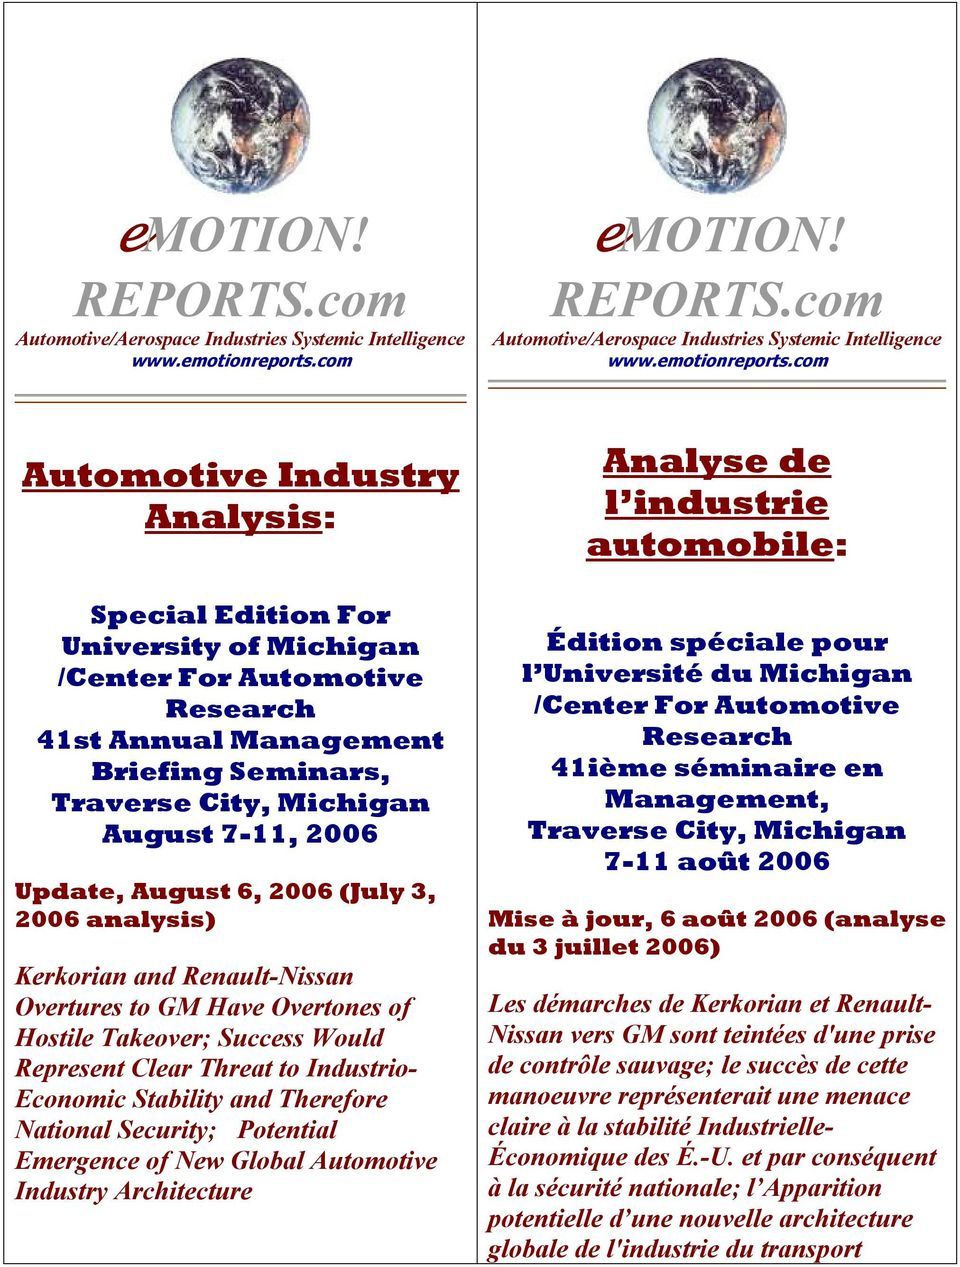 Update, August 6, 2006 (July 3, 2006 analysis) Kerkorian and Renault-Nissan Overtures to GM Have Overtones of Hostile Takeover; Success Would Represent Clear Threat to Industrio- Economic Stability